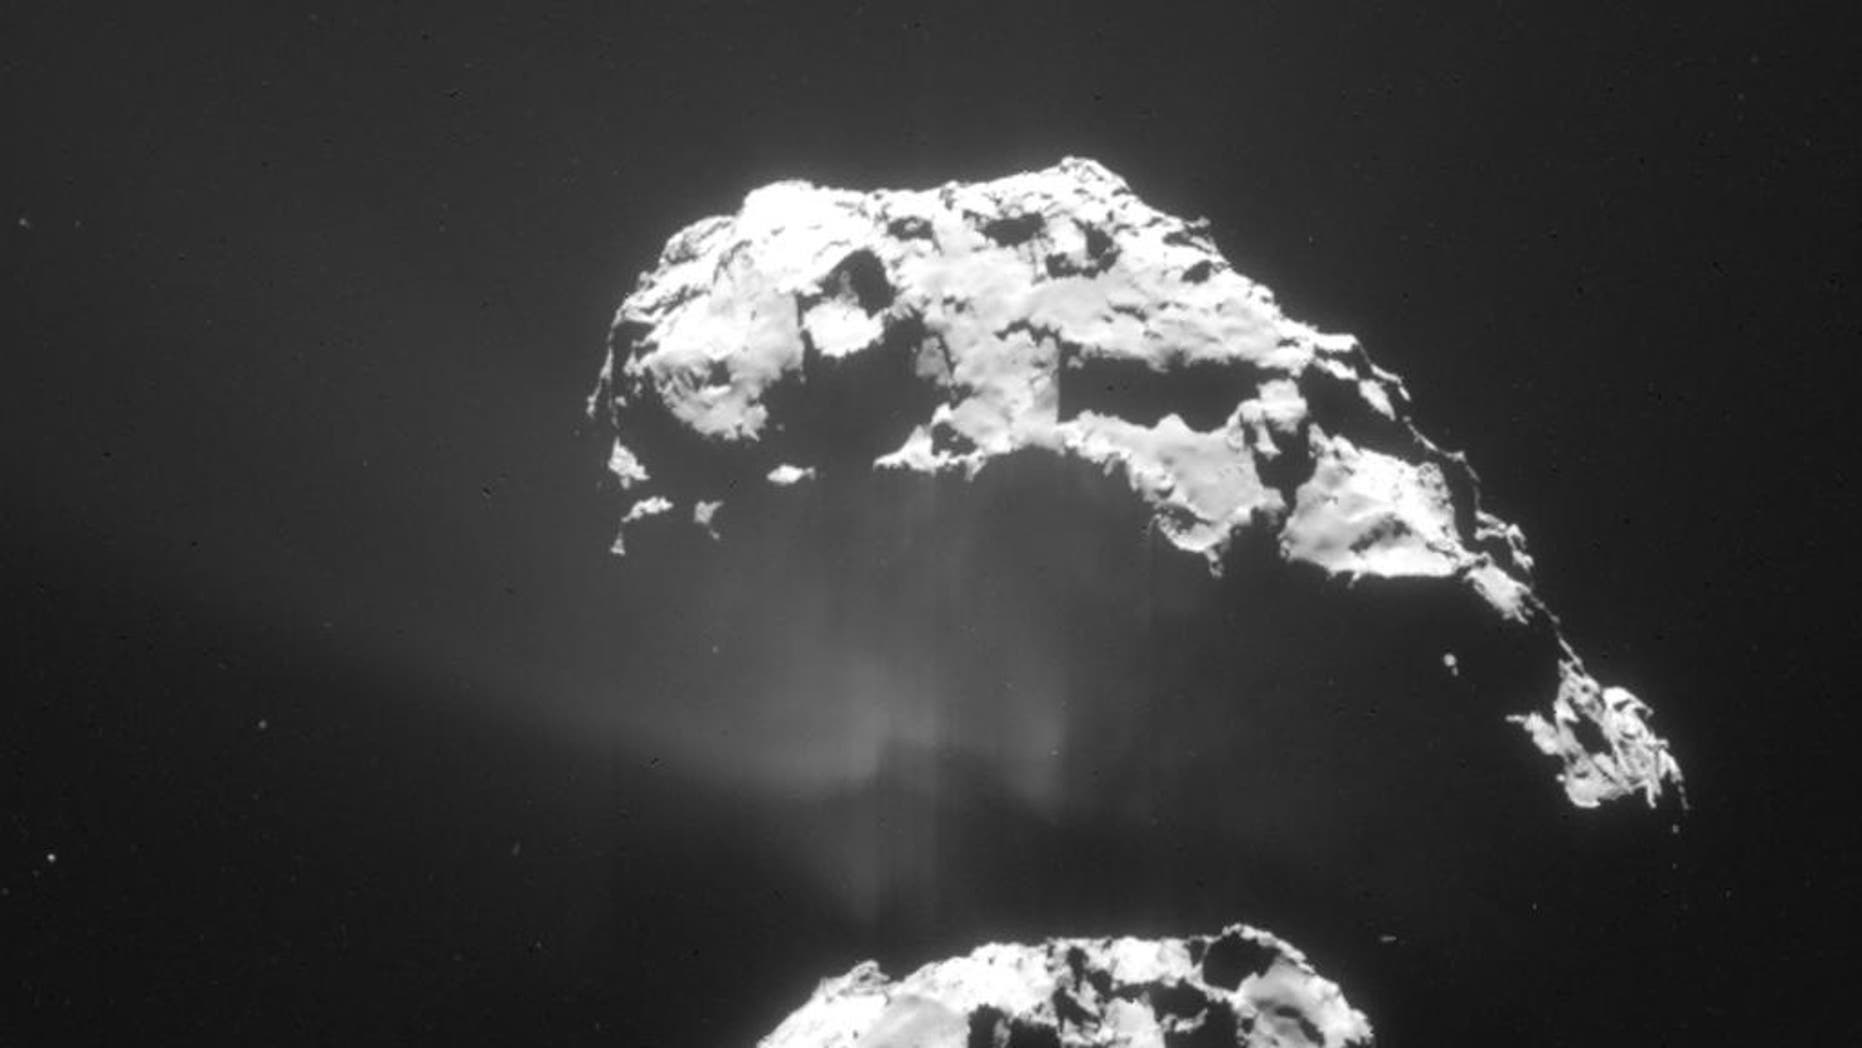 The Feb. 9, 2015 photo released by the European Space Agency ESA on Friday, Feb. 13, 2015 shows an image of the comet 67P/Churyumov-Gerasimenko taken by the Navcam camera of the Rosetta orbiter from a distance of 105km. The European Space Agency's Rosetta space probe has swooped in for a close look at the comet. Rosetta has been flying alongside the comet 67P/Churyumov-Gerasimenko and passed just 6 kilometers (less than 4 miles) above the comet's surface on Saturday, Feb. 14, 2015.  (AP Photo/ESA/Rosetta/Navcam)